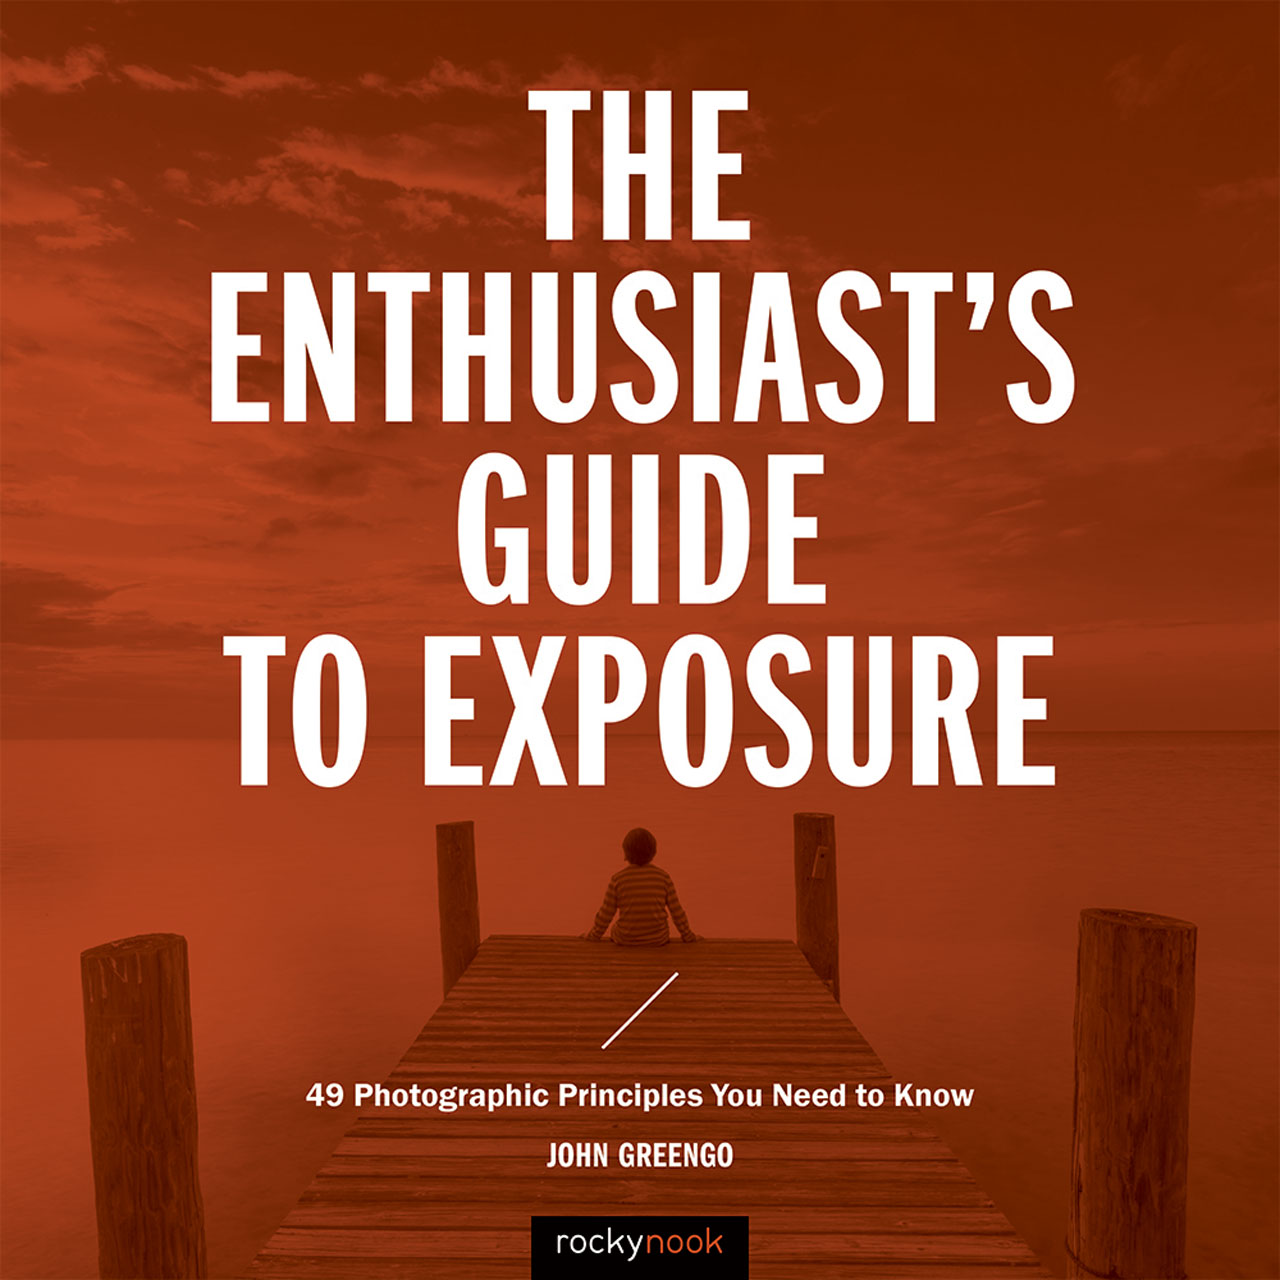 Book Cover - The Enthusiast's Guide to Exposure: 49 Photographic Principles You Need To Know